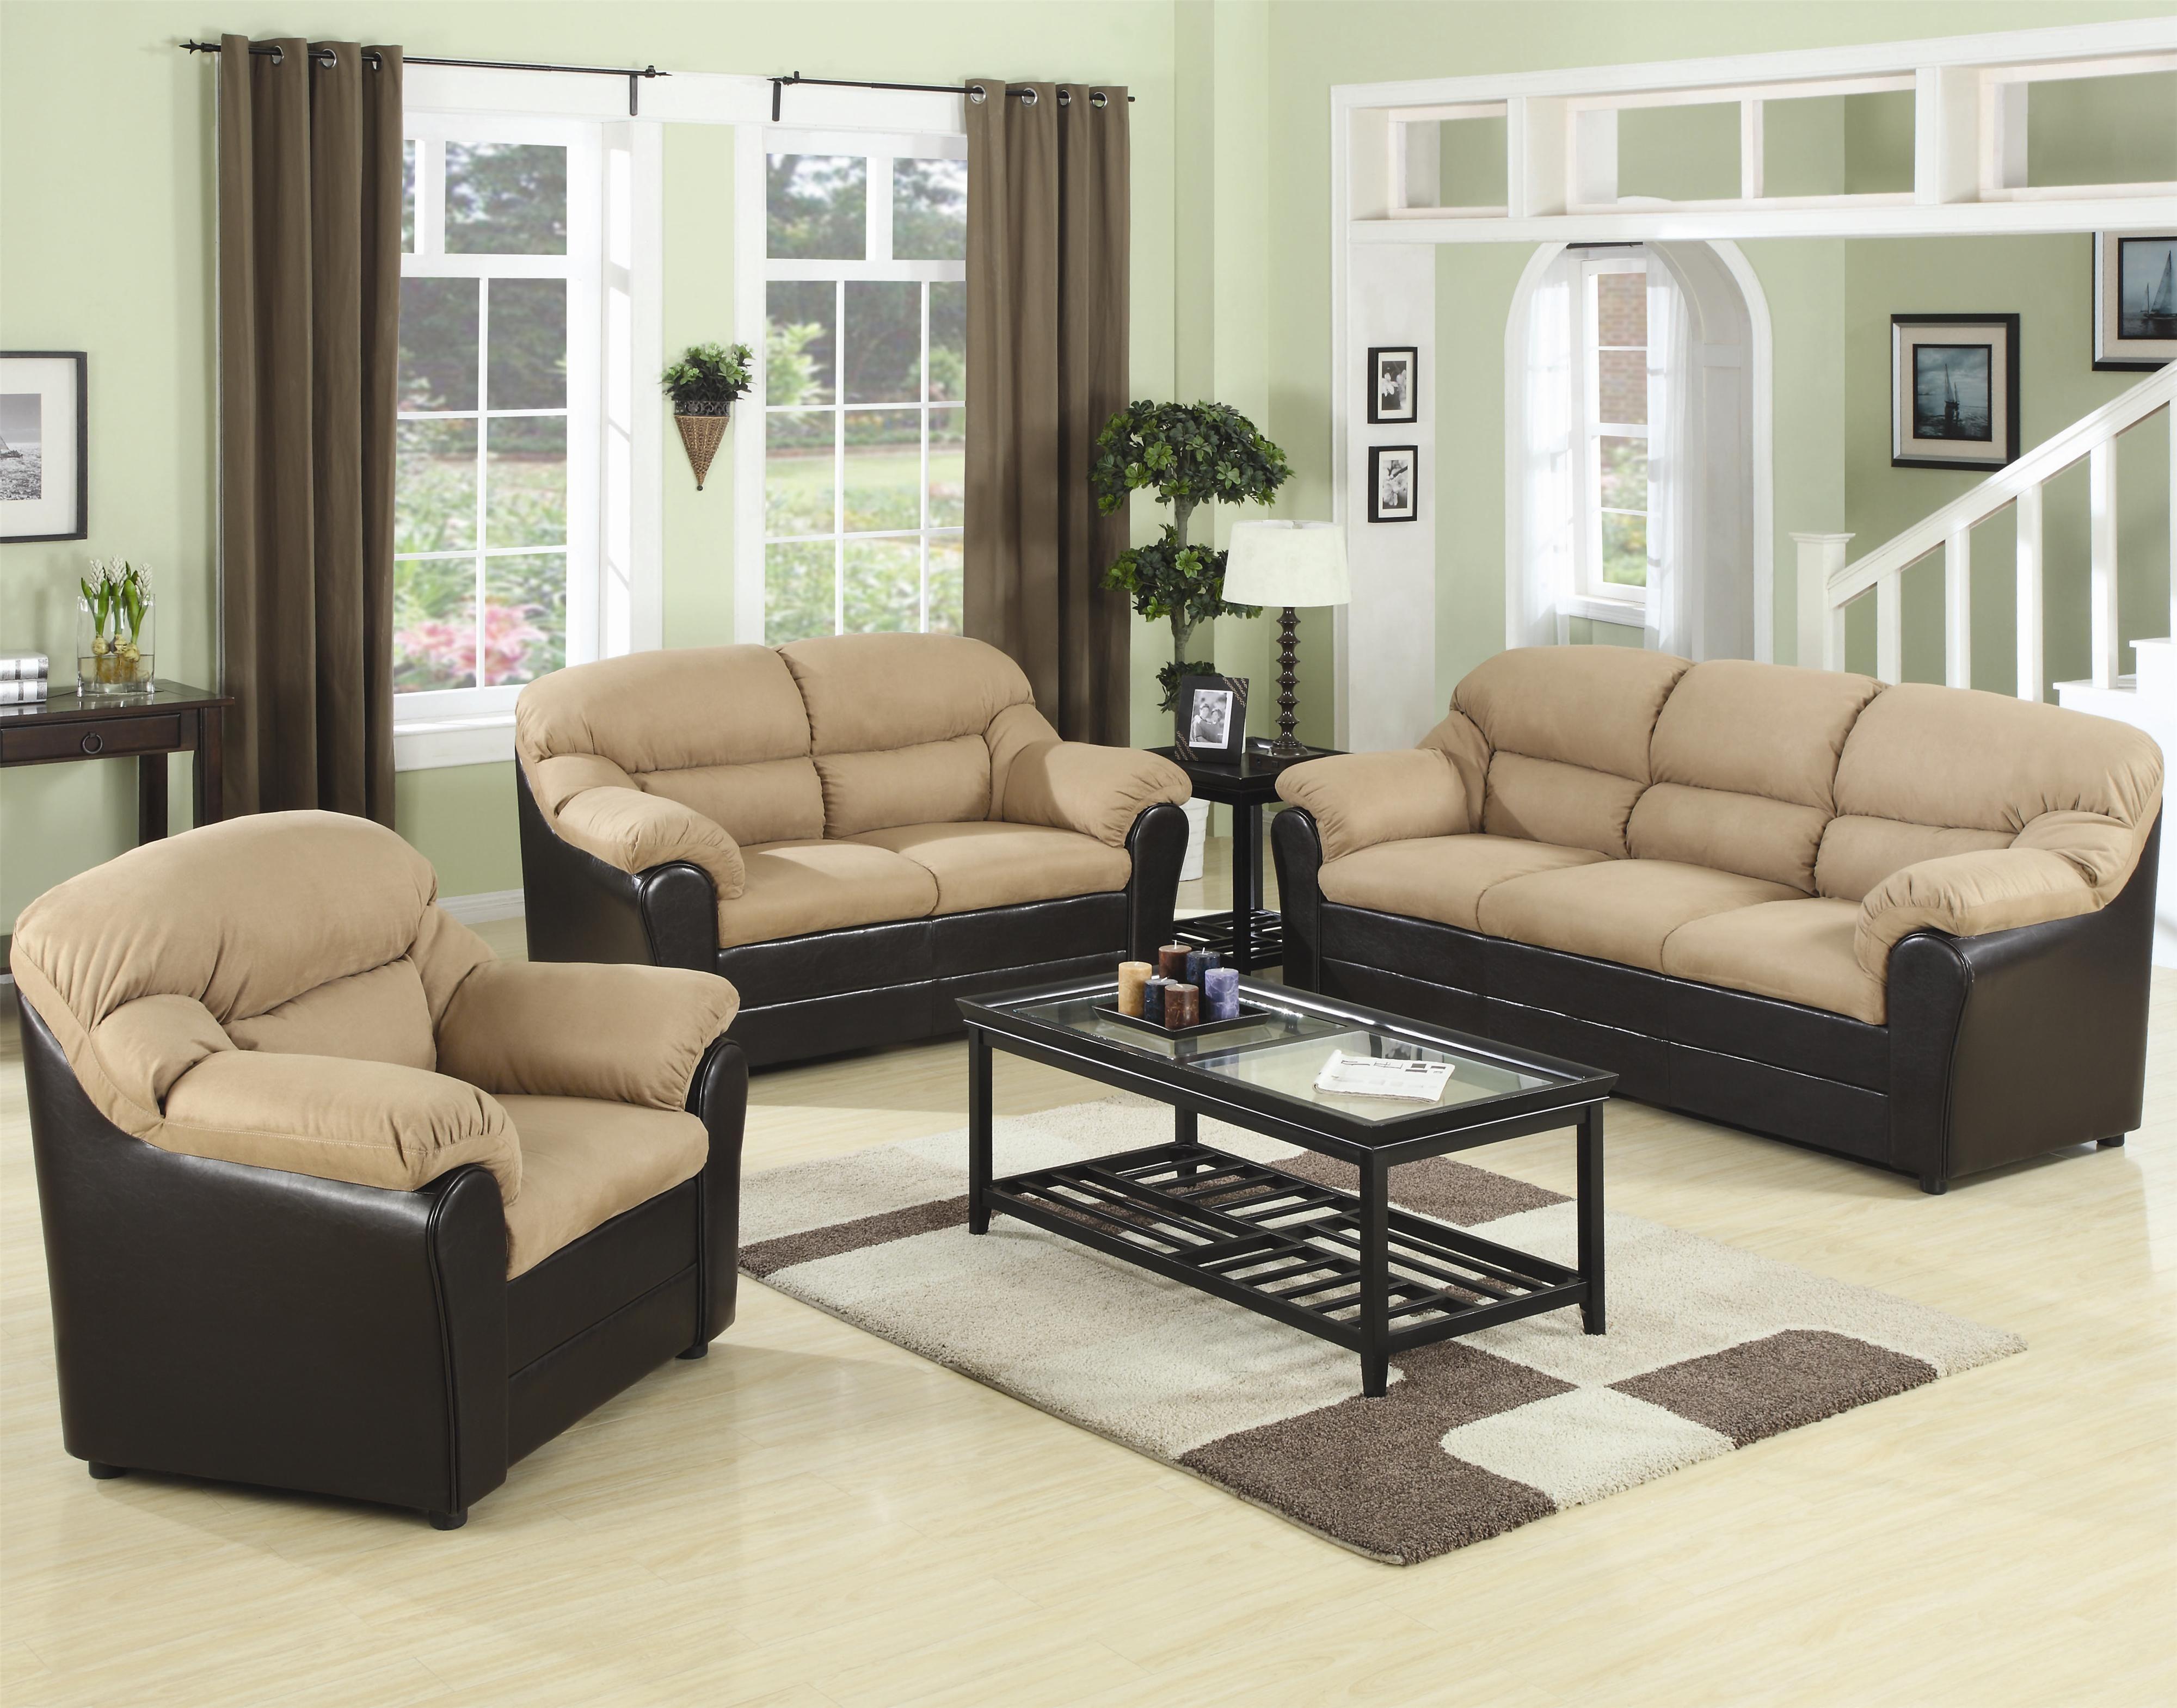 You Can Get Affordable Living Room Furniture Of Your Choice